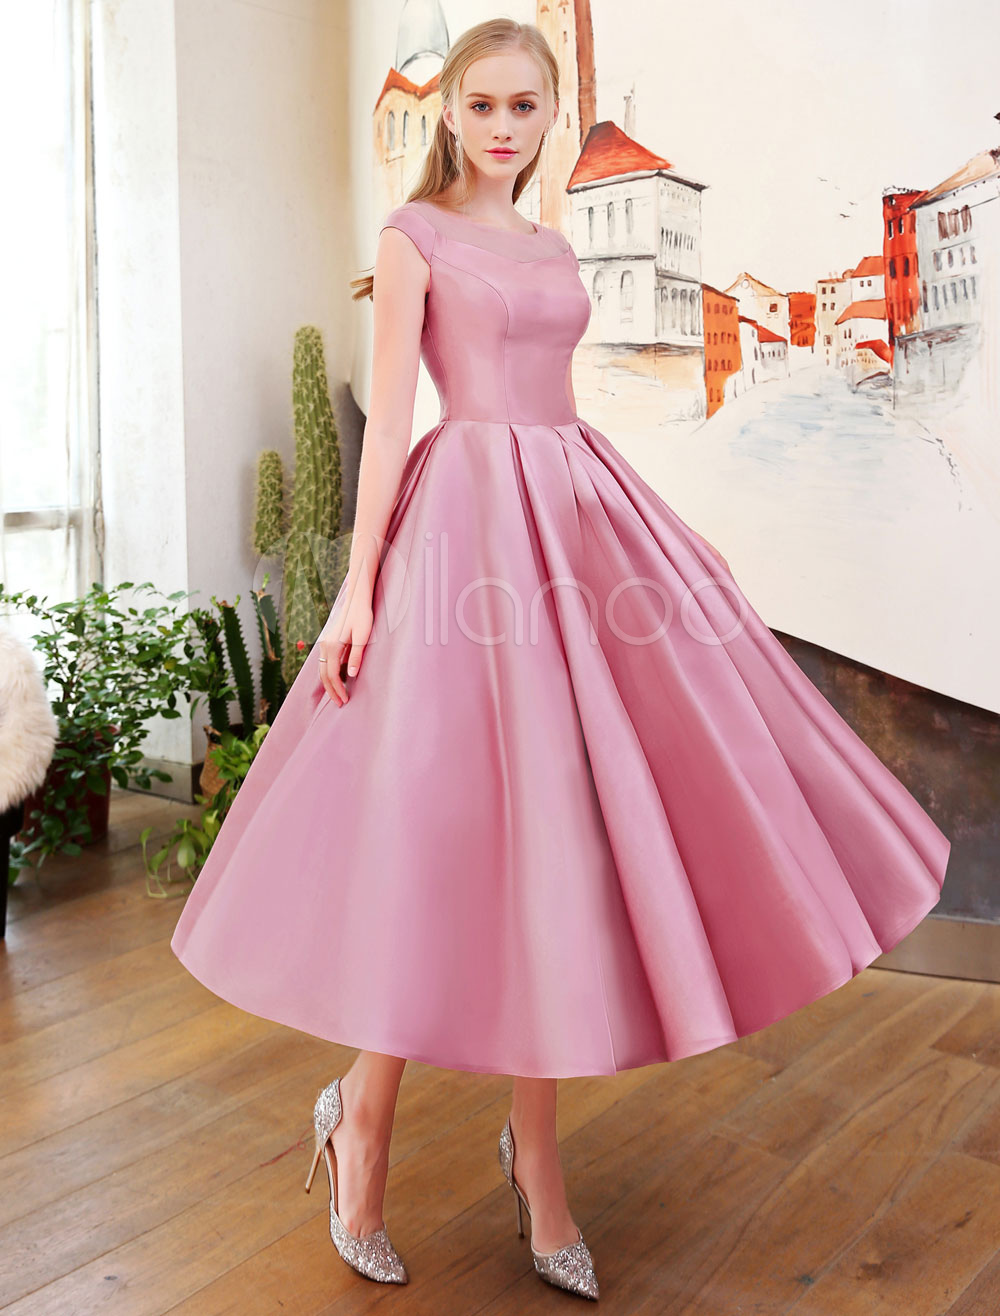 Short Prom Dresses Cameo Pink Satin Homecoming Dress Pleated 1950\'s ...